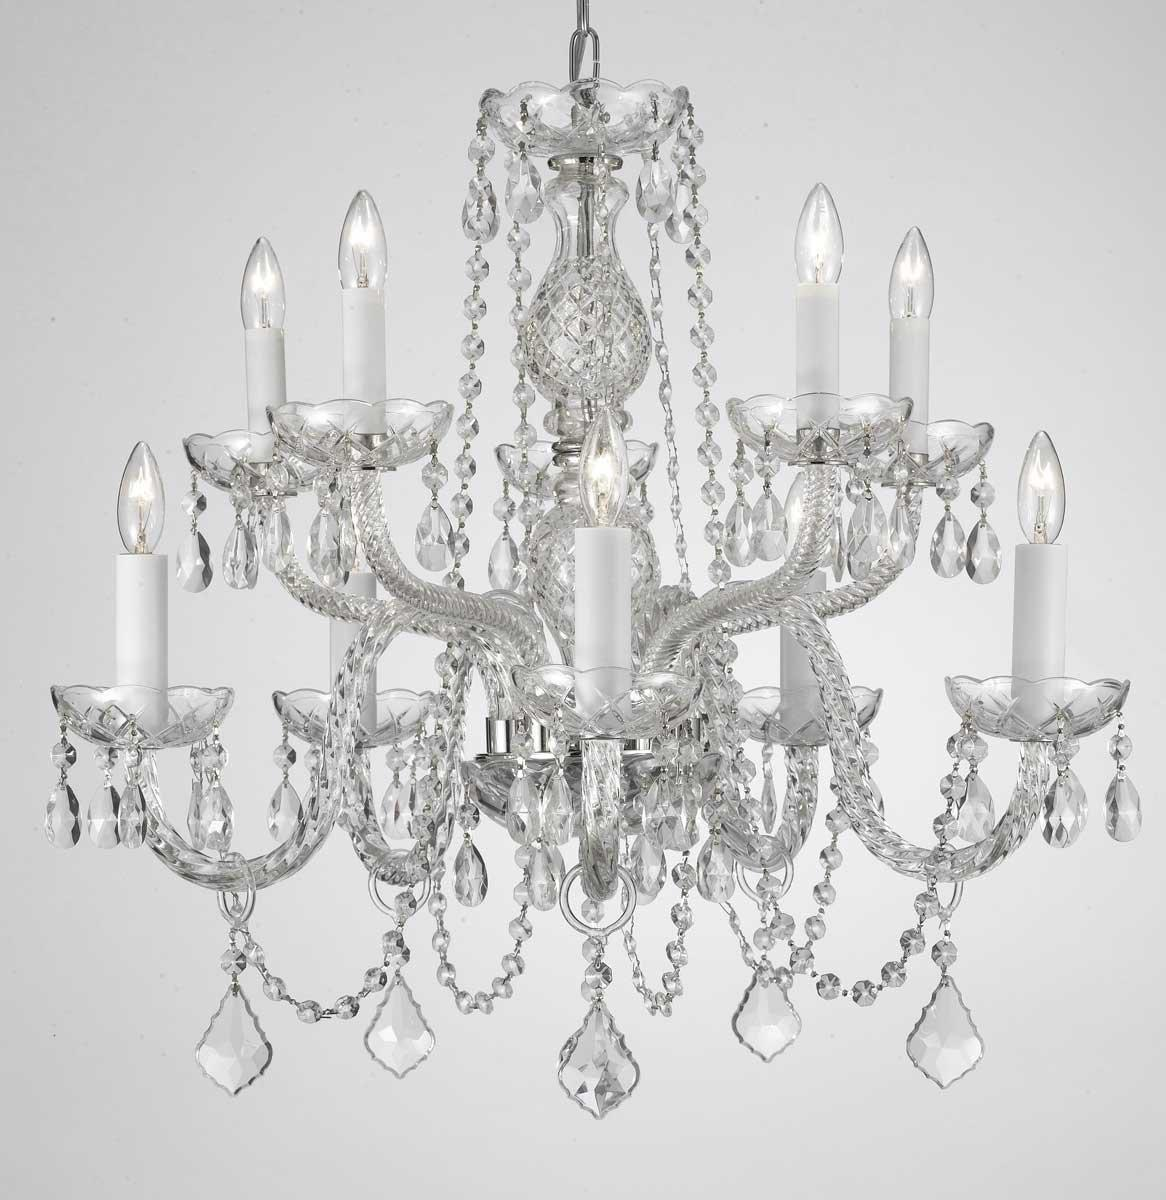 Empress Crystal Plug In Chandelier With 10 Lights H25 x W24